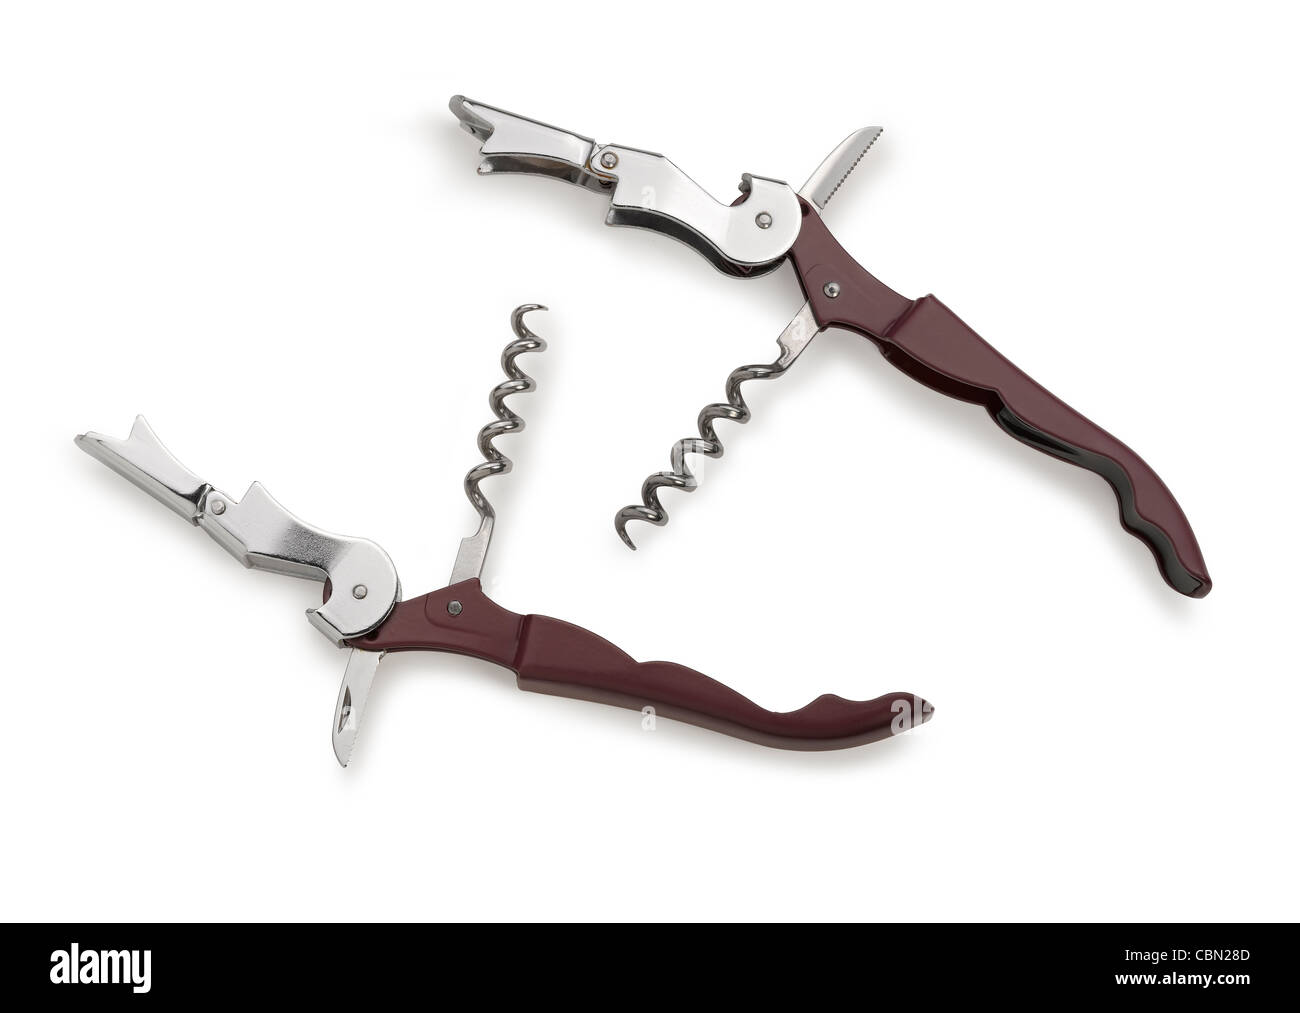 corkscrew isolated on a white background. Studio photo (clipping path) - Stock Image